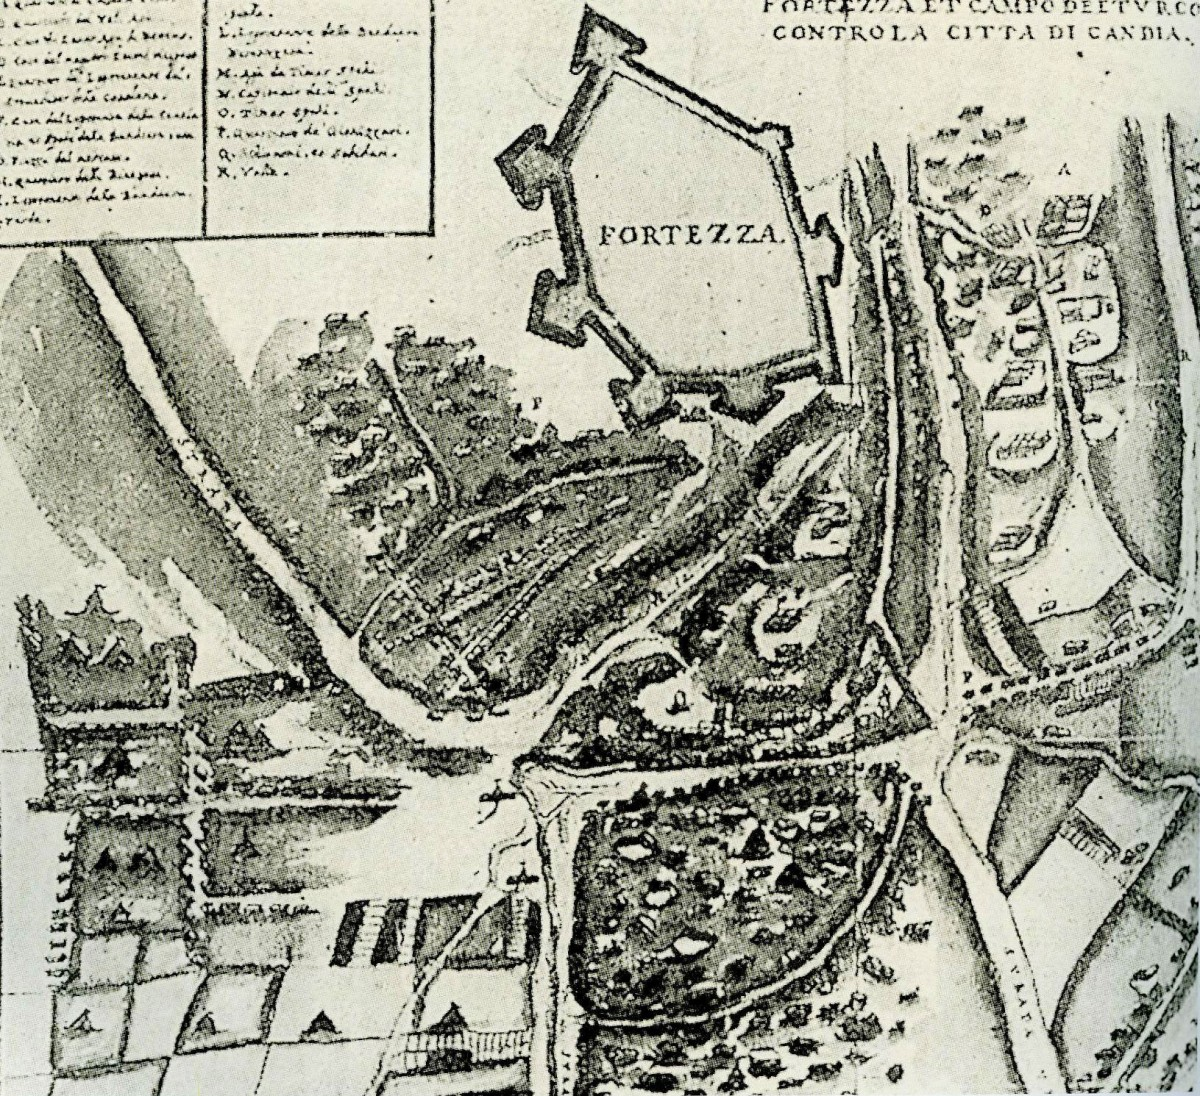 Fig. 1. 17th c. plan of the Inadiye fort (1648-1650), south of the city of Candia.